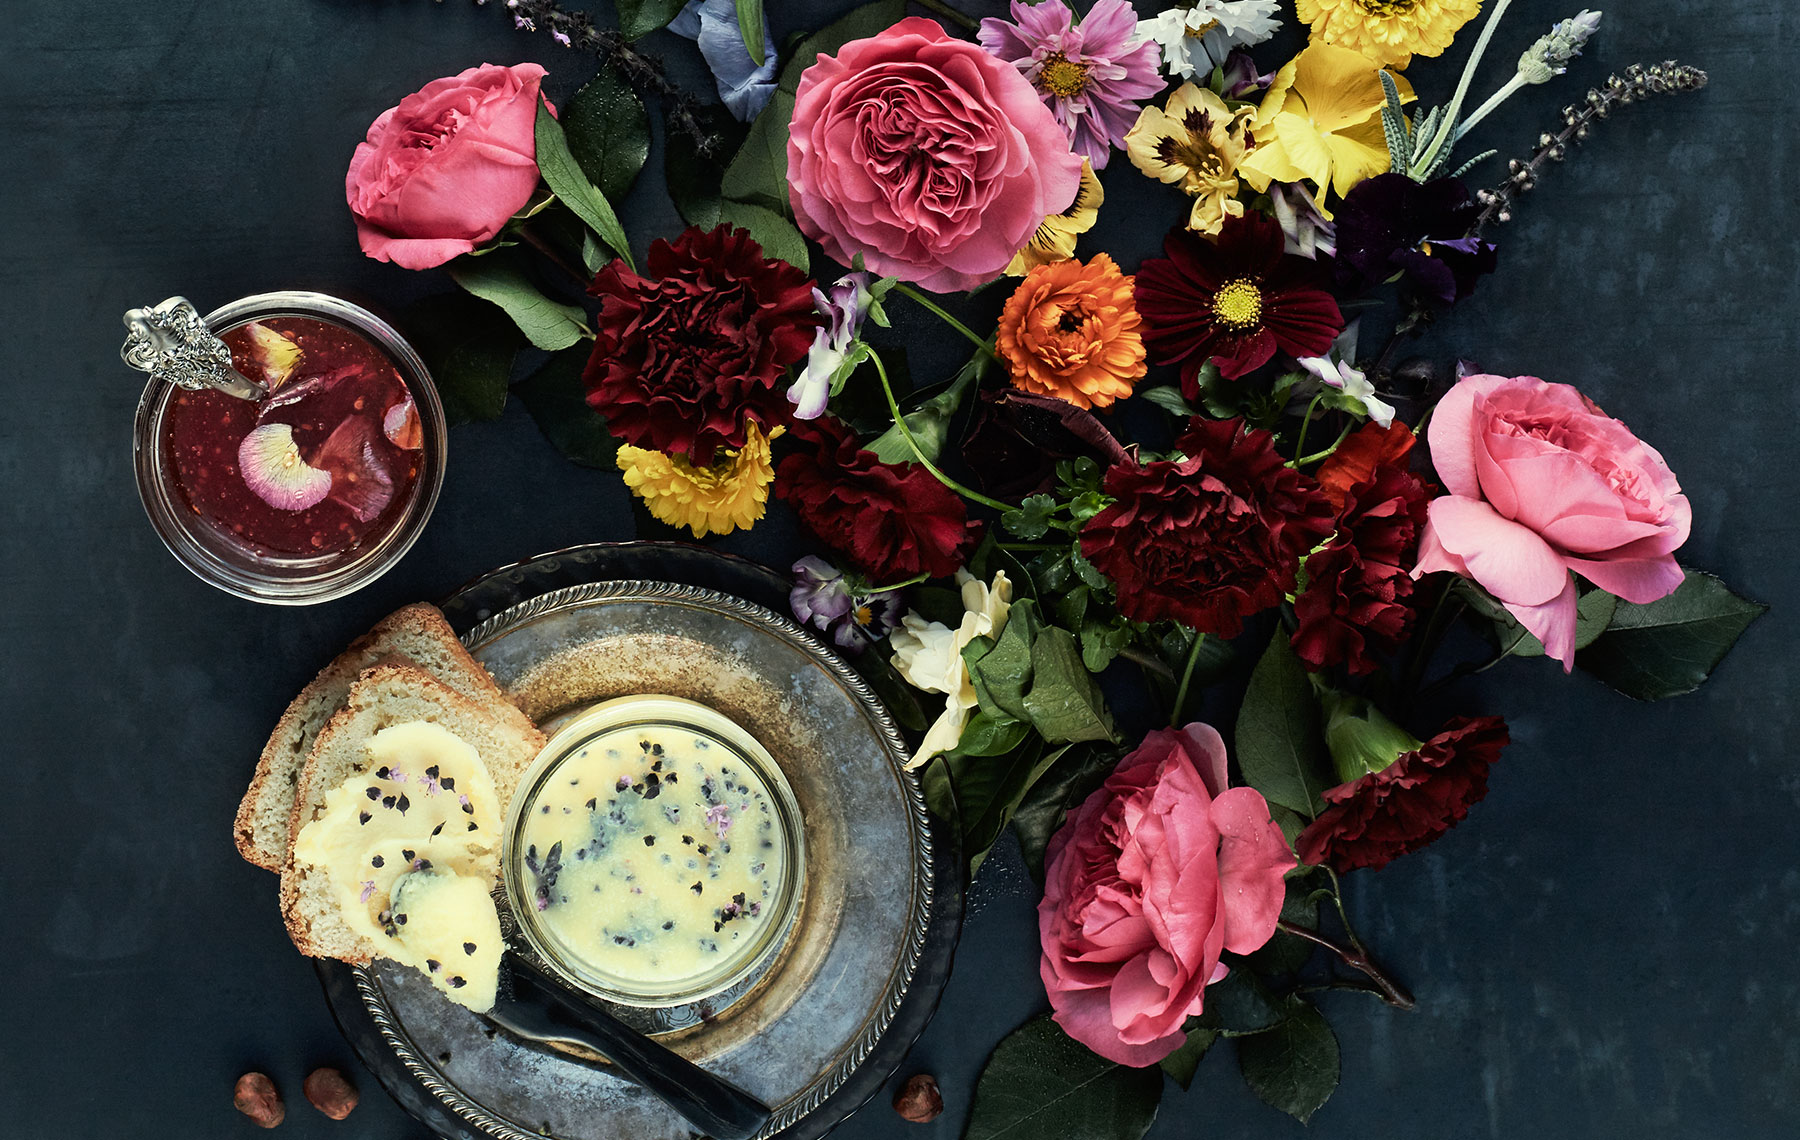 EdibleFlowers_Butter_KyokoFierro_Photography_FoodandWineMagazine